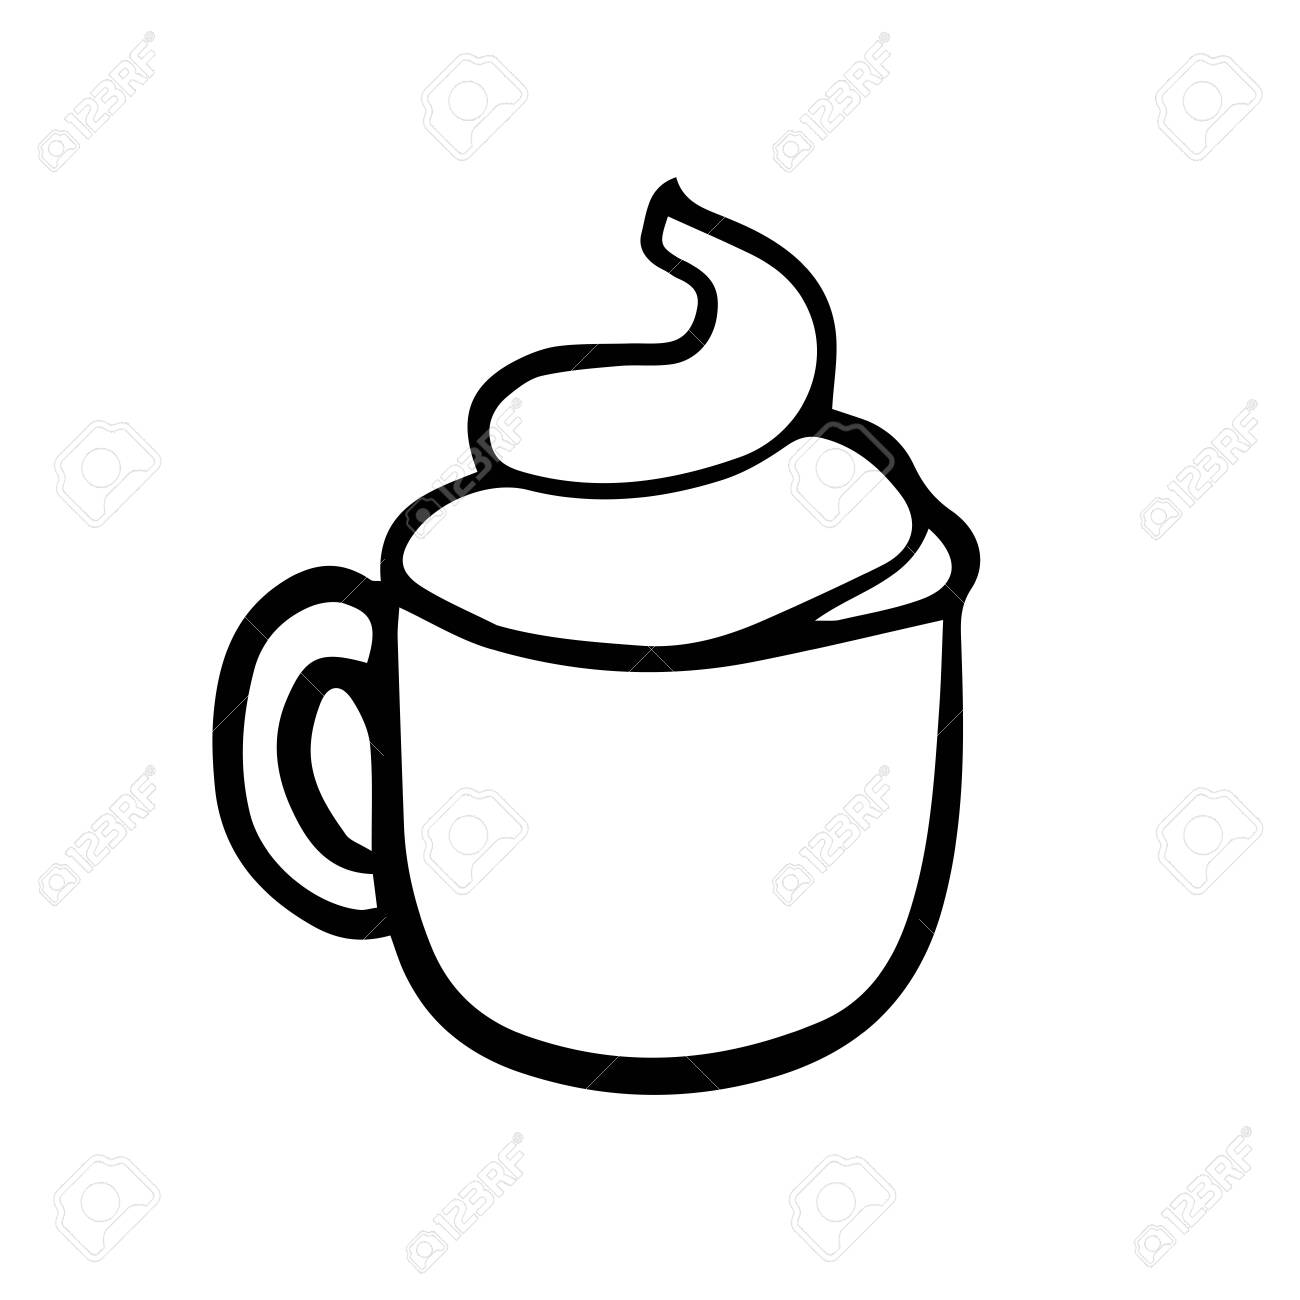 Doodle Sketch Mug With Cappuccino Cartoon Drawing Of Coffee Royalty Free Cliparts Vectors And Stock Illustration Image 126701367